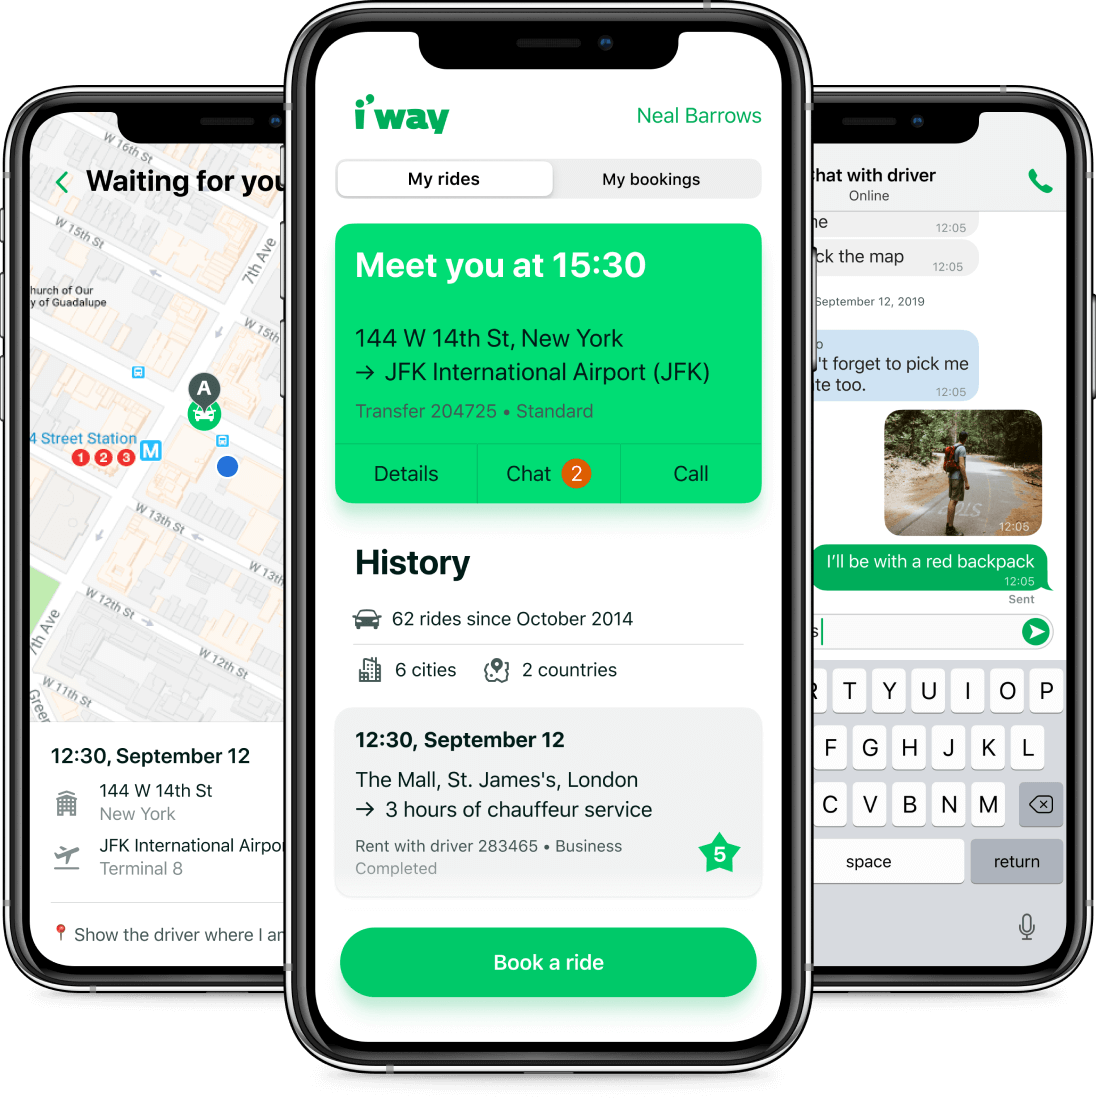 I'way app screenshot